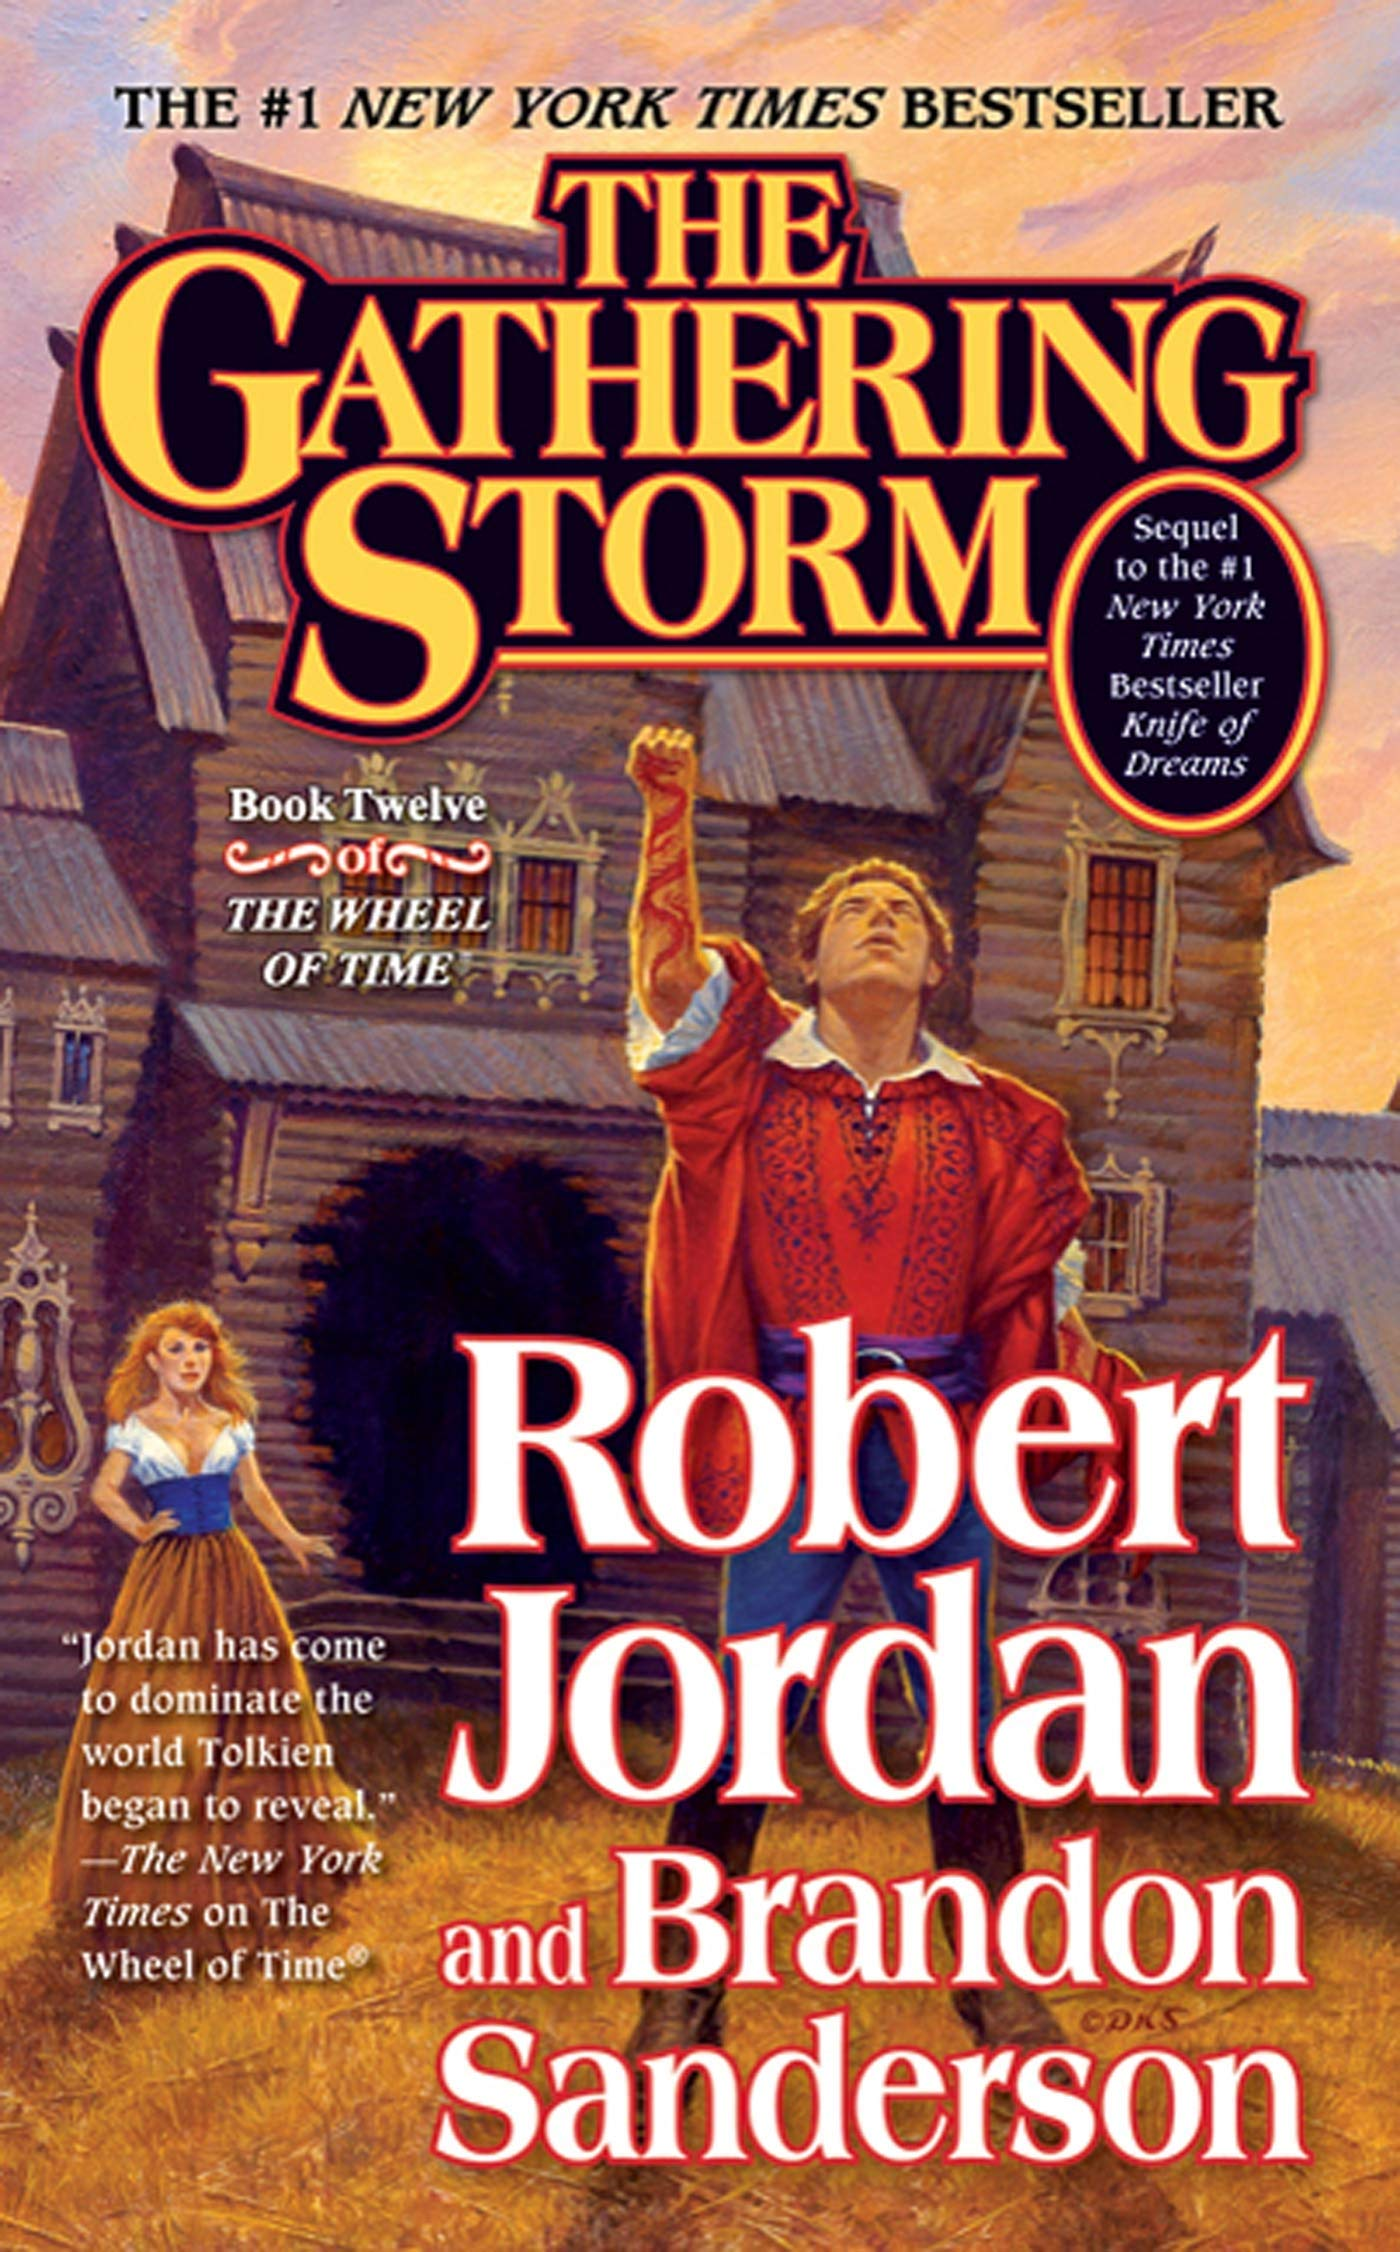 Premedicación Ahorro Comercio  The Gathering Storm: Book Twelve of the Wheel of Time (Wheel of Time, 12):  Jordan, Robert, Sanderson, Brandon: 9780765341532: Amazon.com: Books